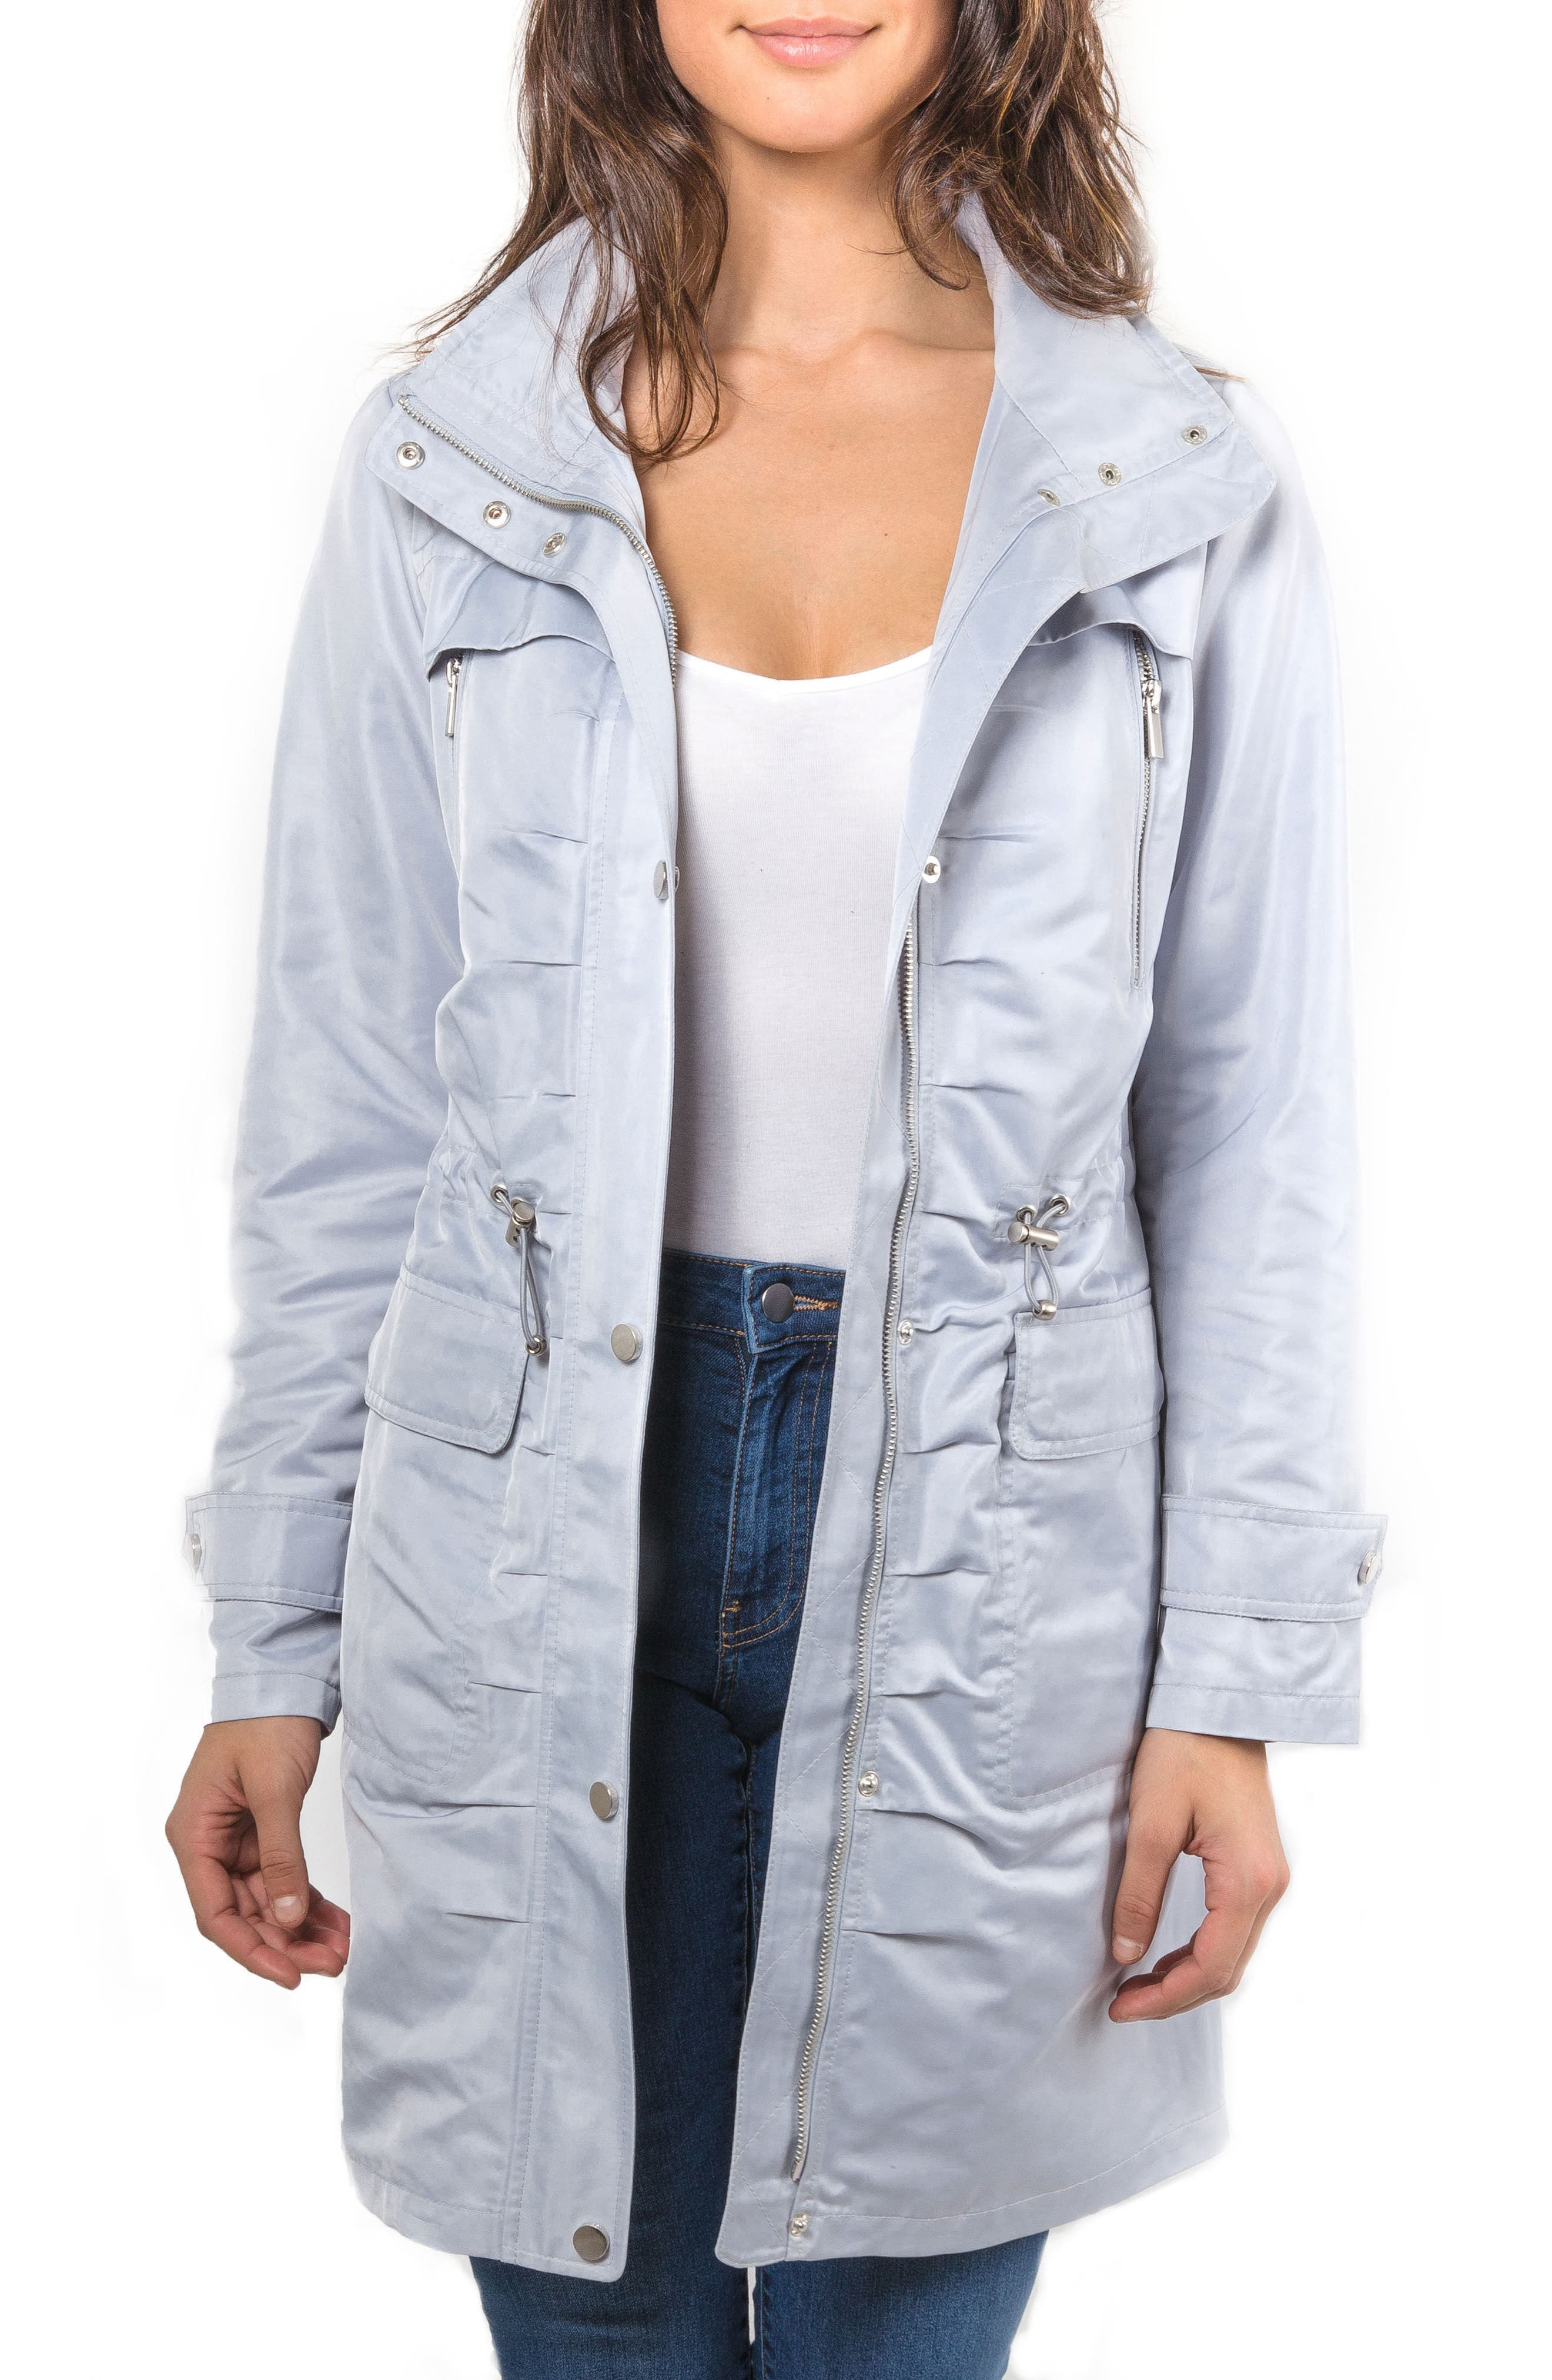 Badgley Mischka Ruched Water Repellent Anorak,                             Main thumbnail 1, color,                             457